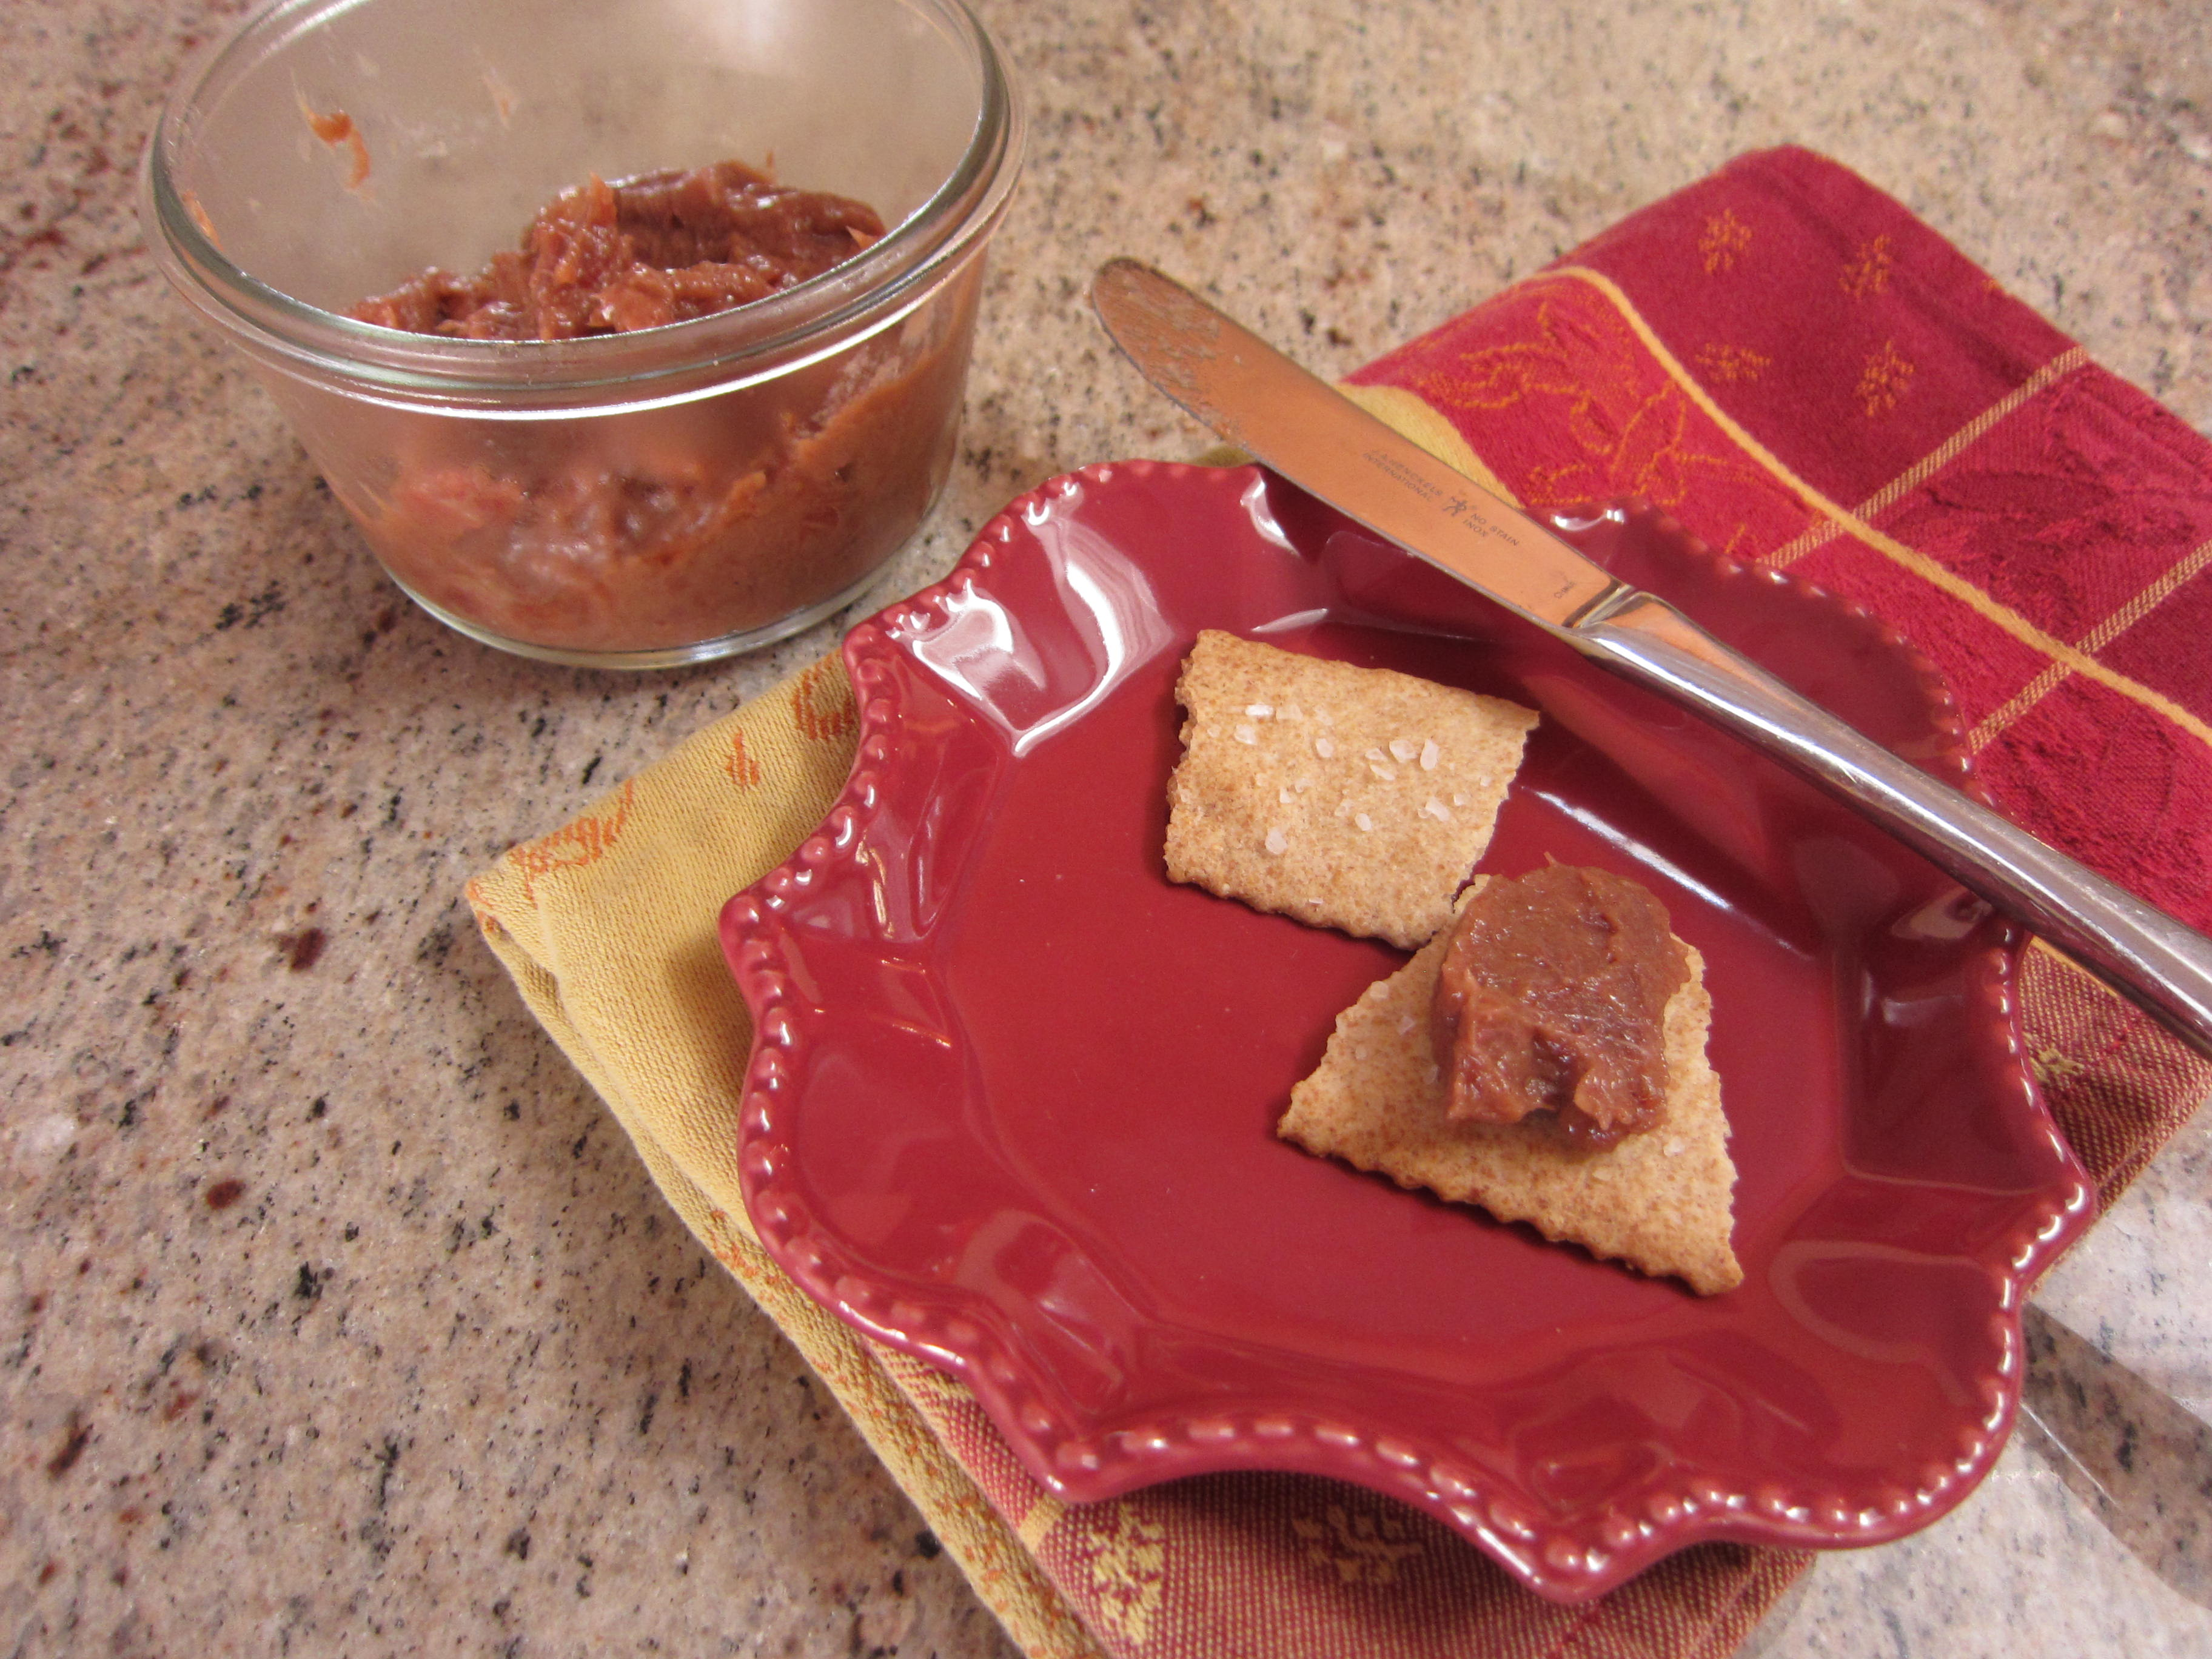 Rhubarb compote on crackers or toast or home made bread or...